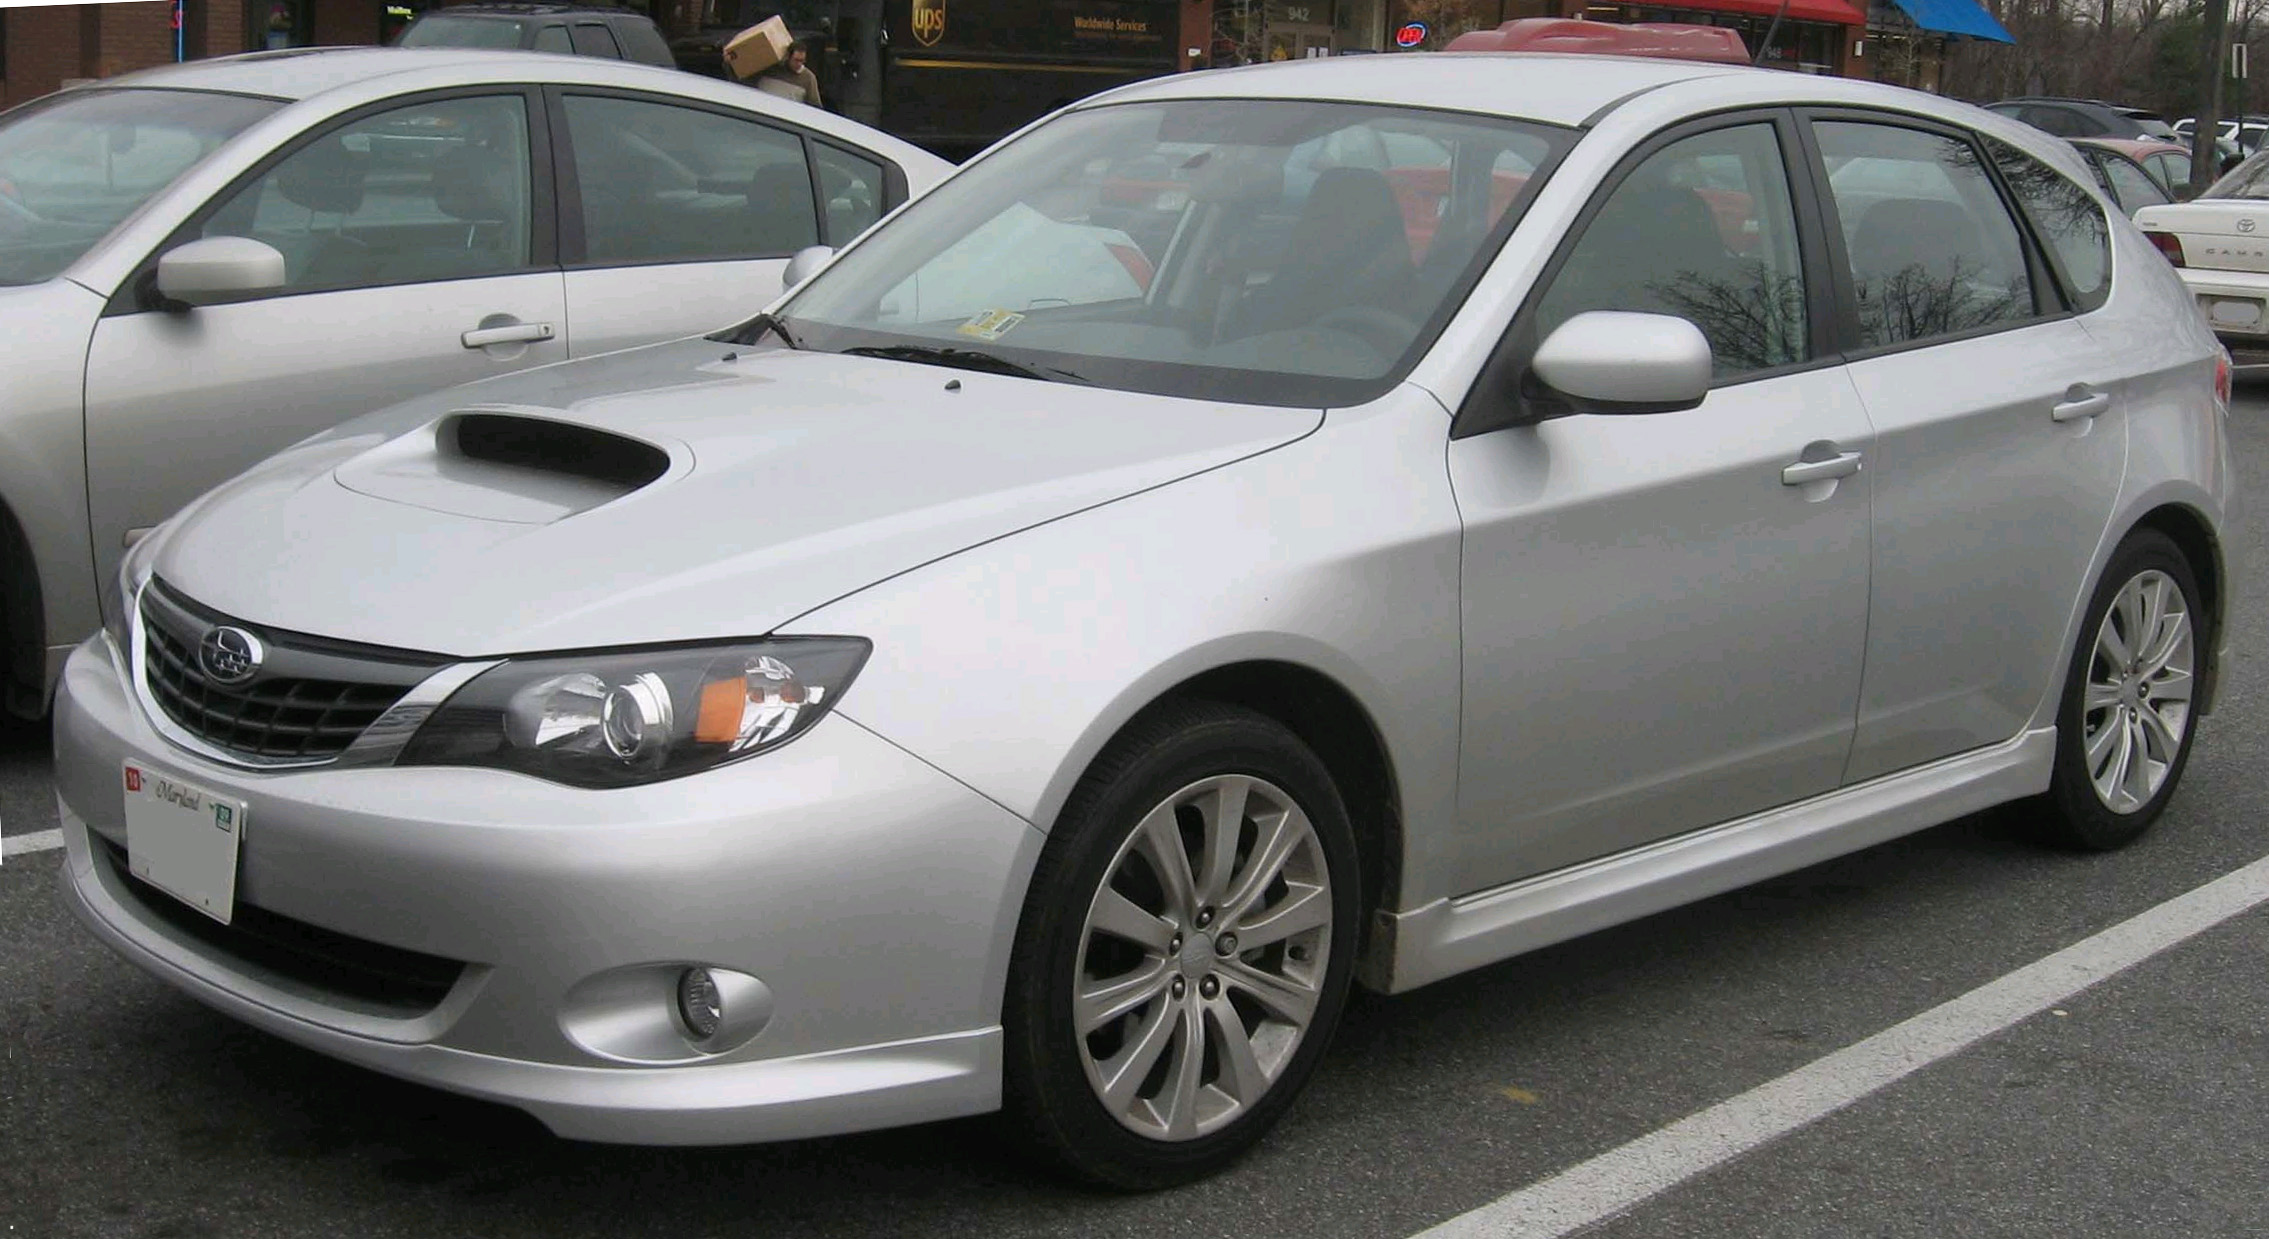 file:08 subaru wrx hatch front - wikimedia commons